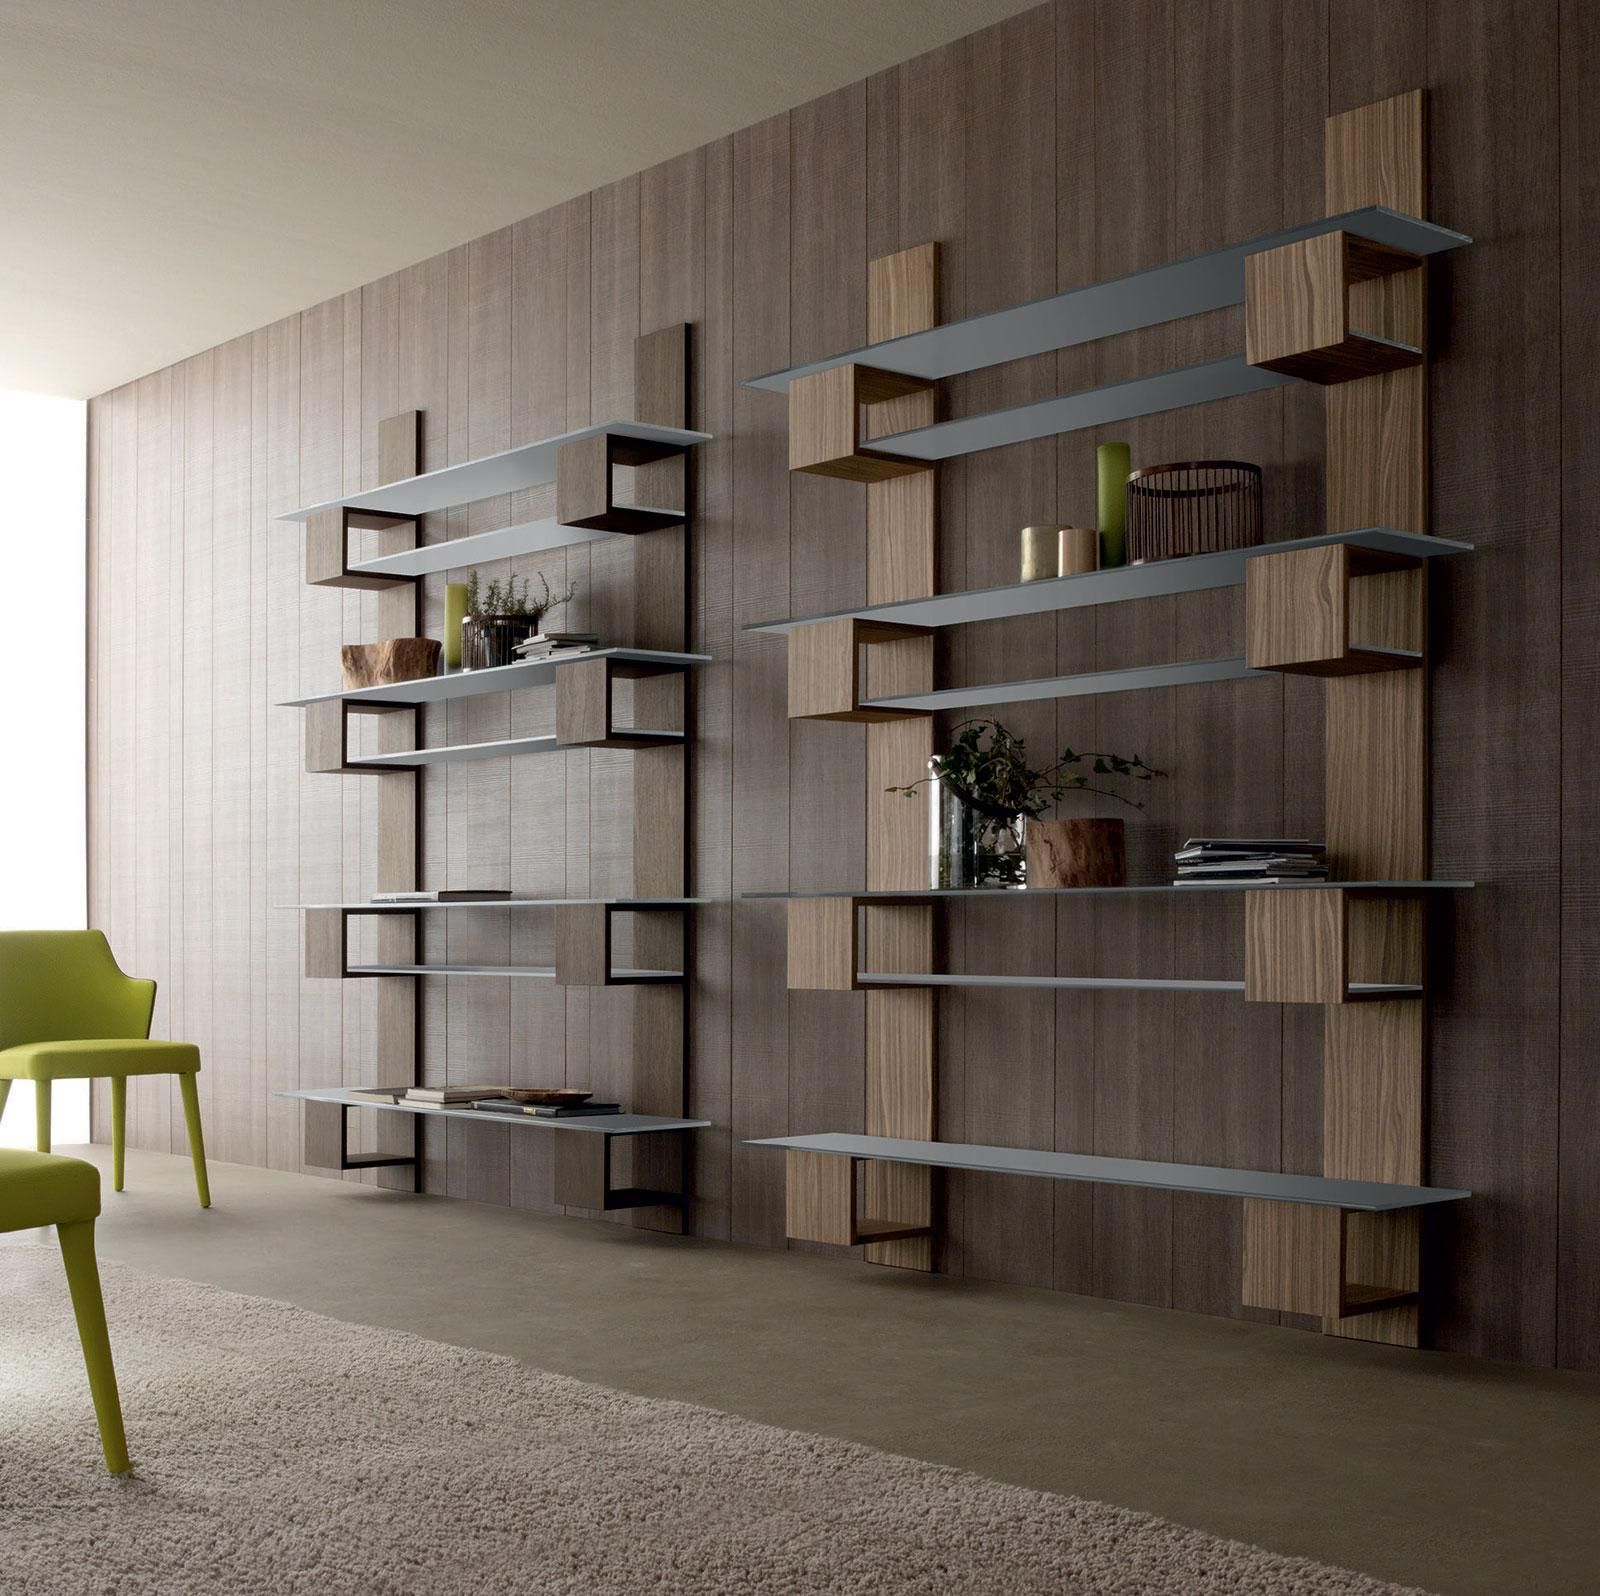 Infinity Meuble Biblioth Que Mural Tag Res Idd # Meuble Bibliotheque Design